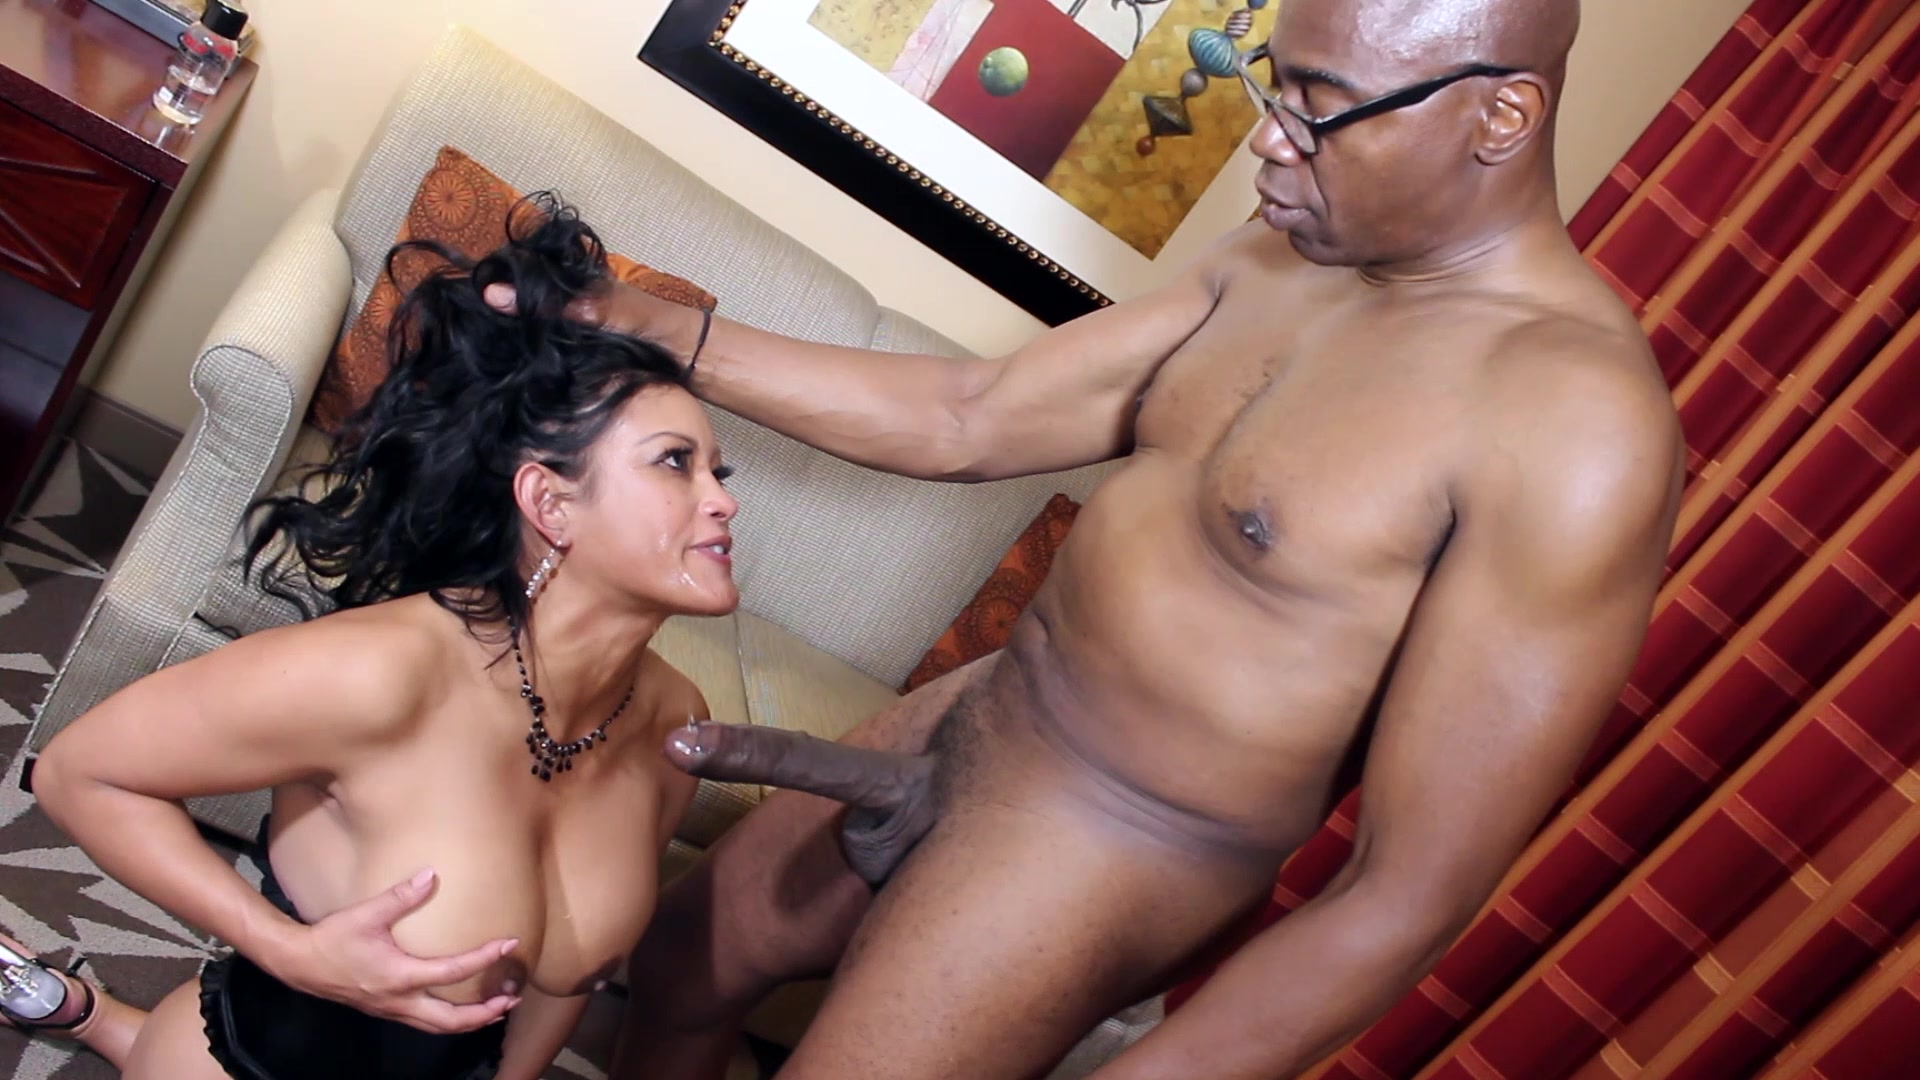 Interracial japanese with african